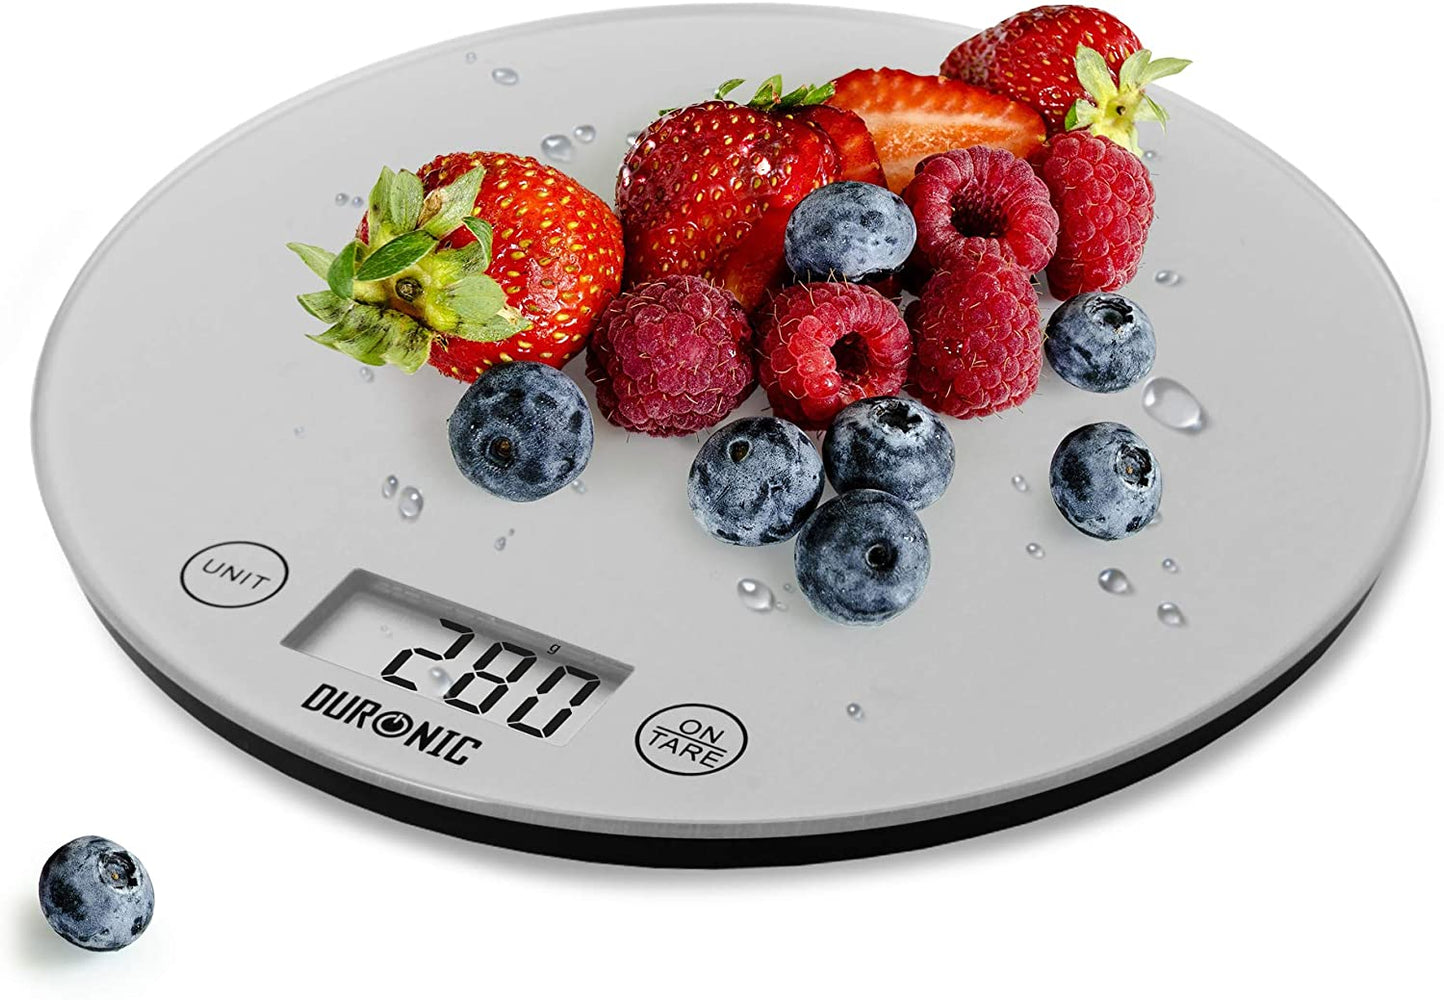 Duronic Digital Kitchen Scales KS1055 | Silver Design with Glass Platform | 5kg Capacity | Clear LCD Display | Add & Weigh Tare | 0.1g Precision | Measure Ingredients for Cooking & Baking